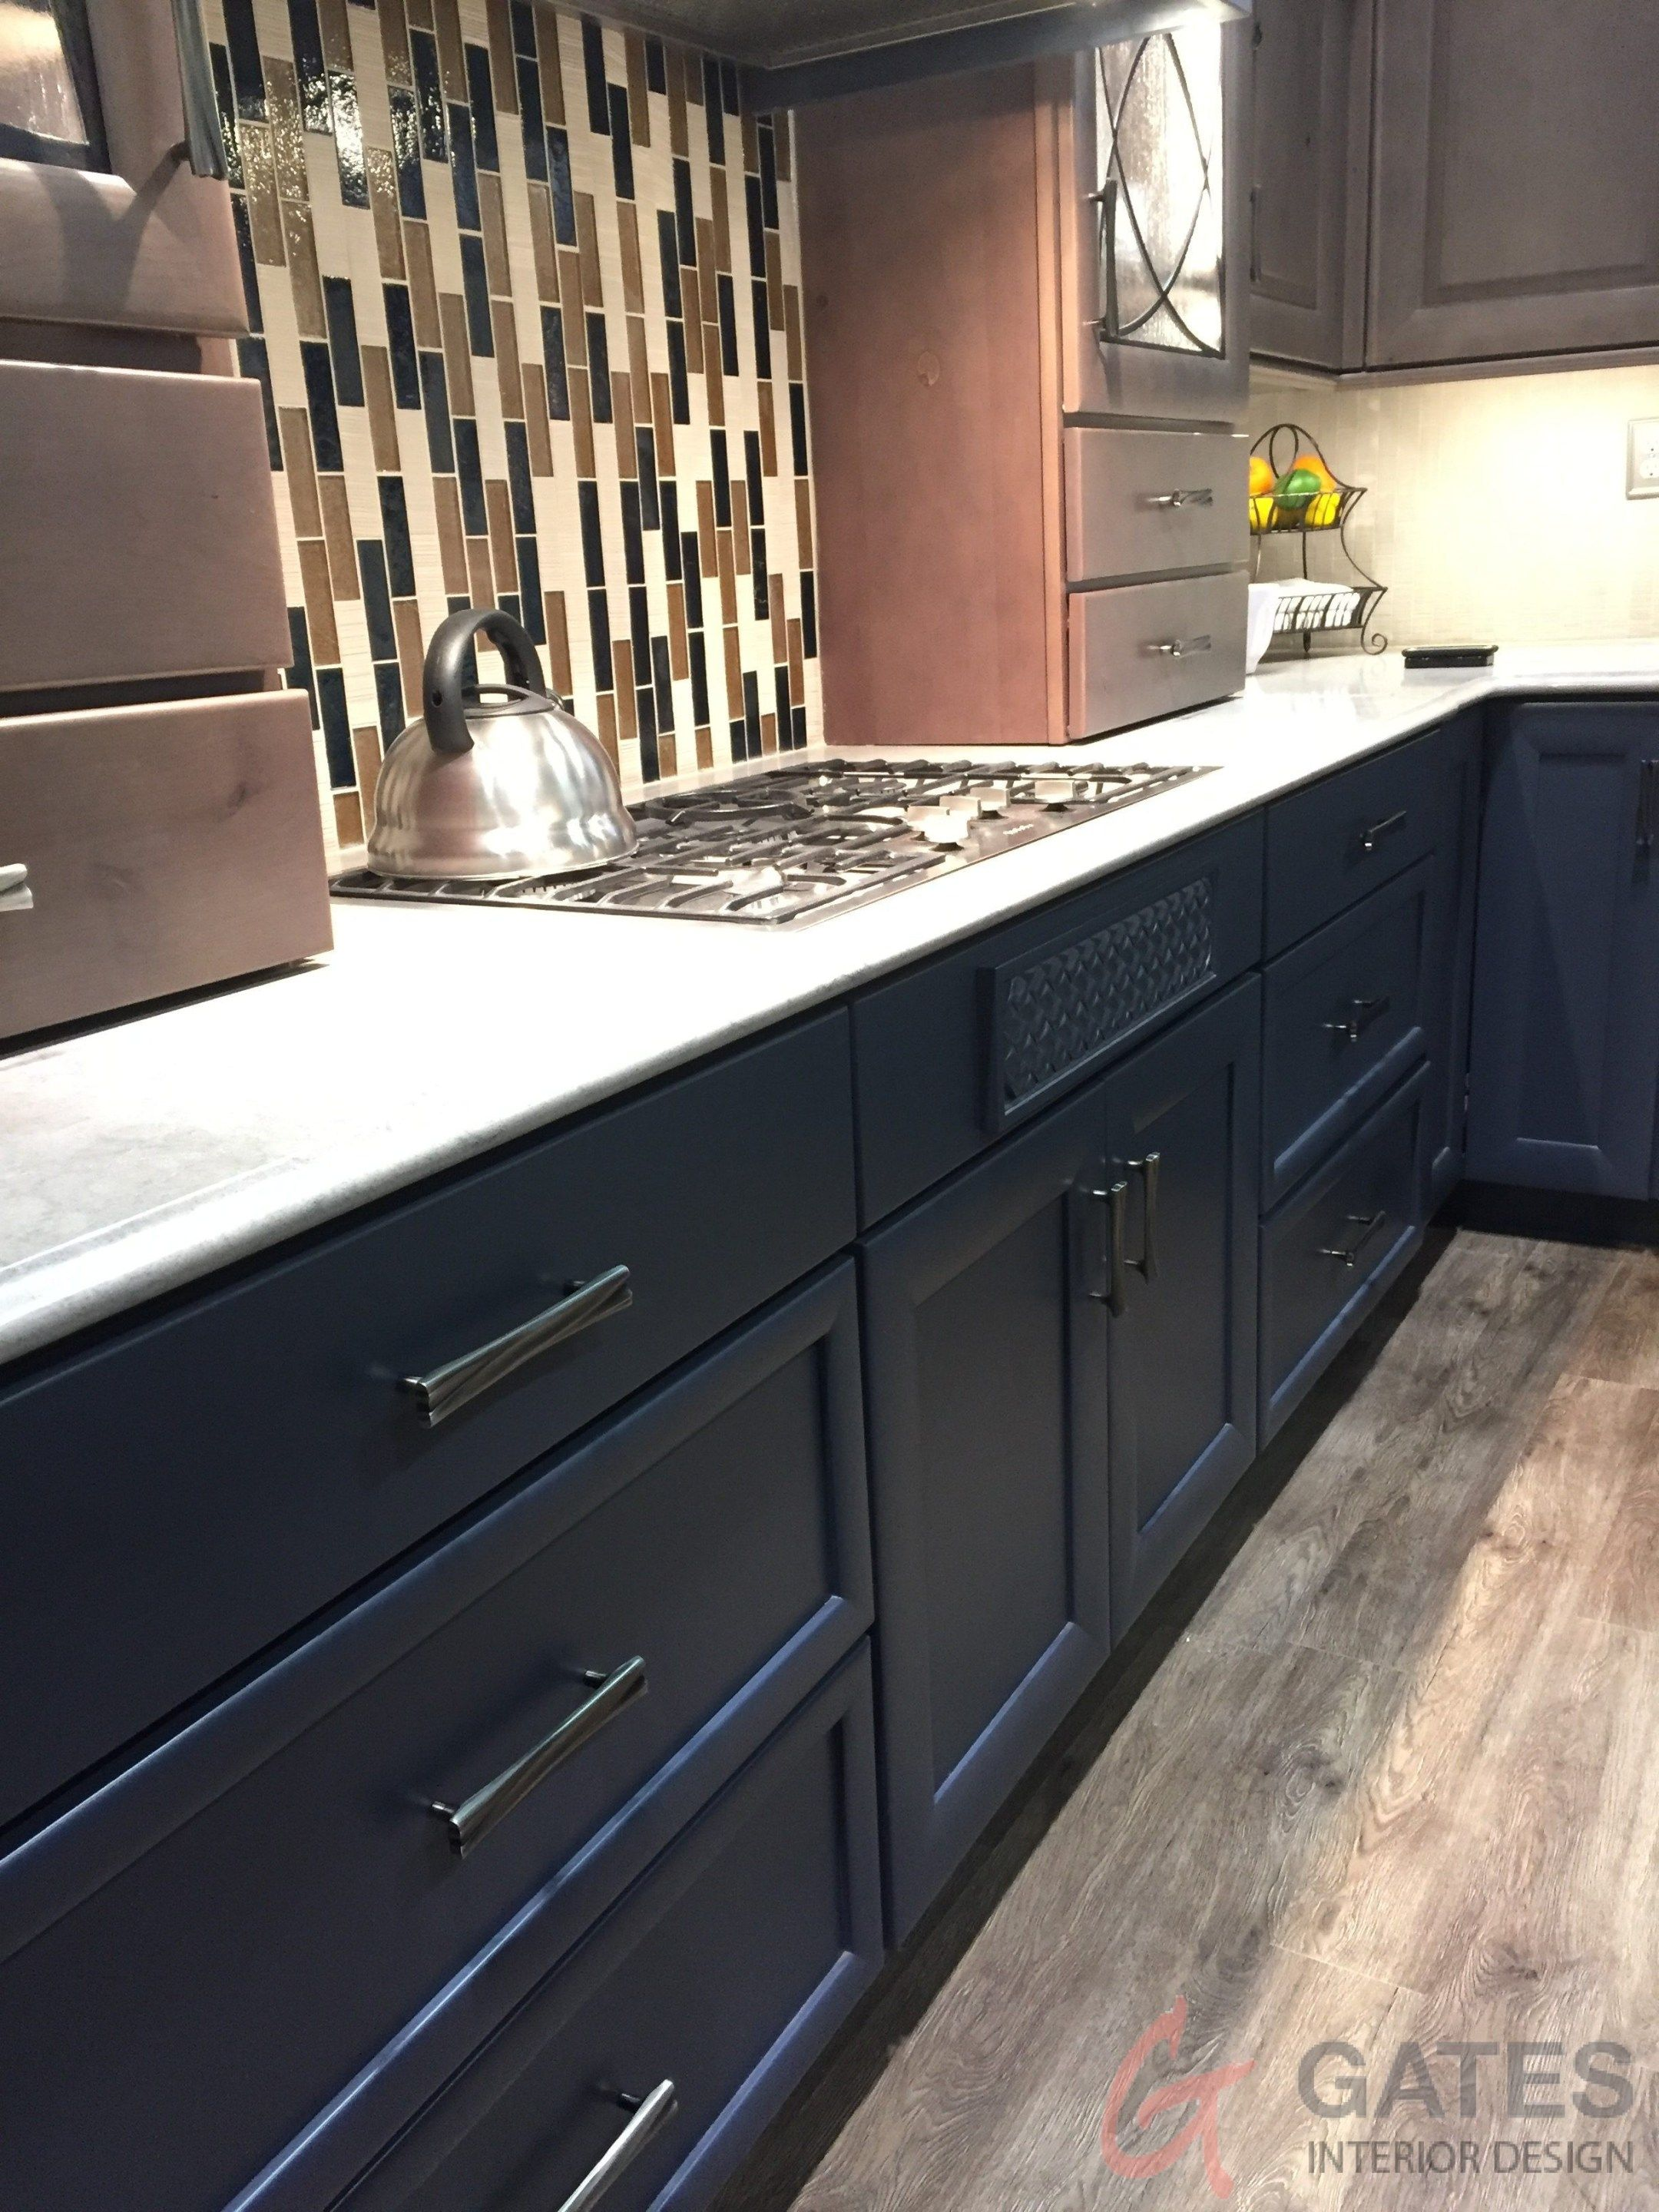 Best Hottest New Kitchen And Bath Trends For 2019 Kitchen 400 x 300